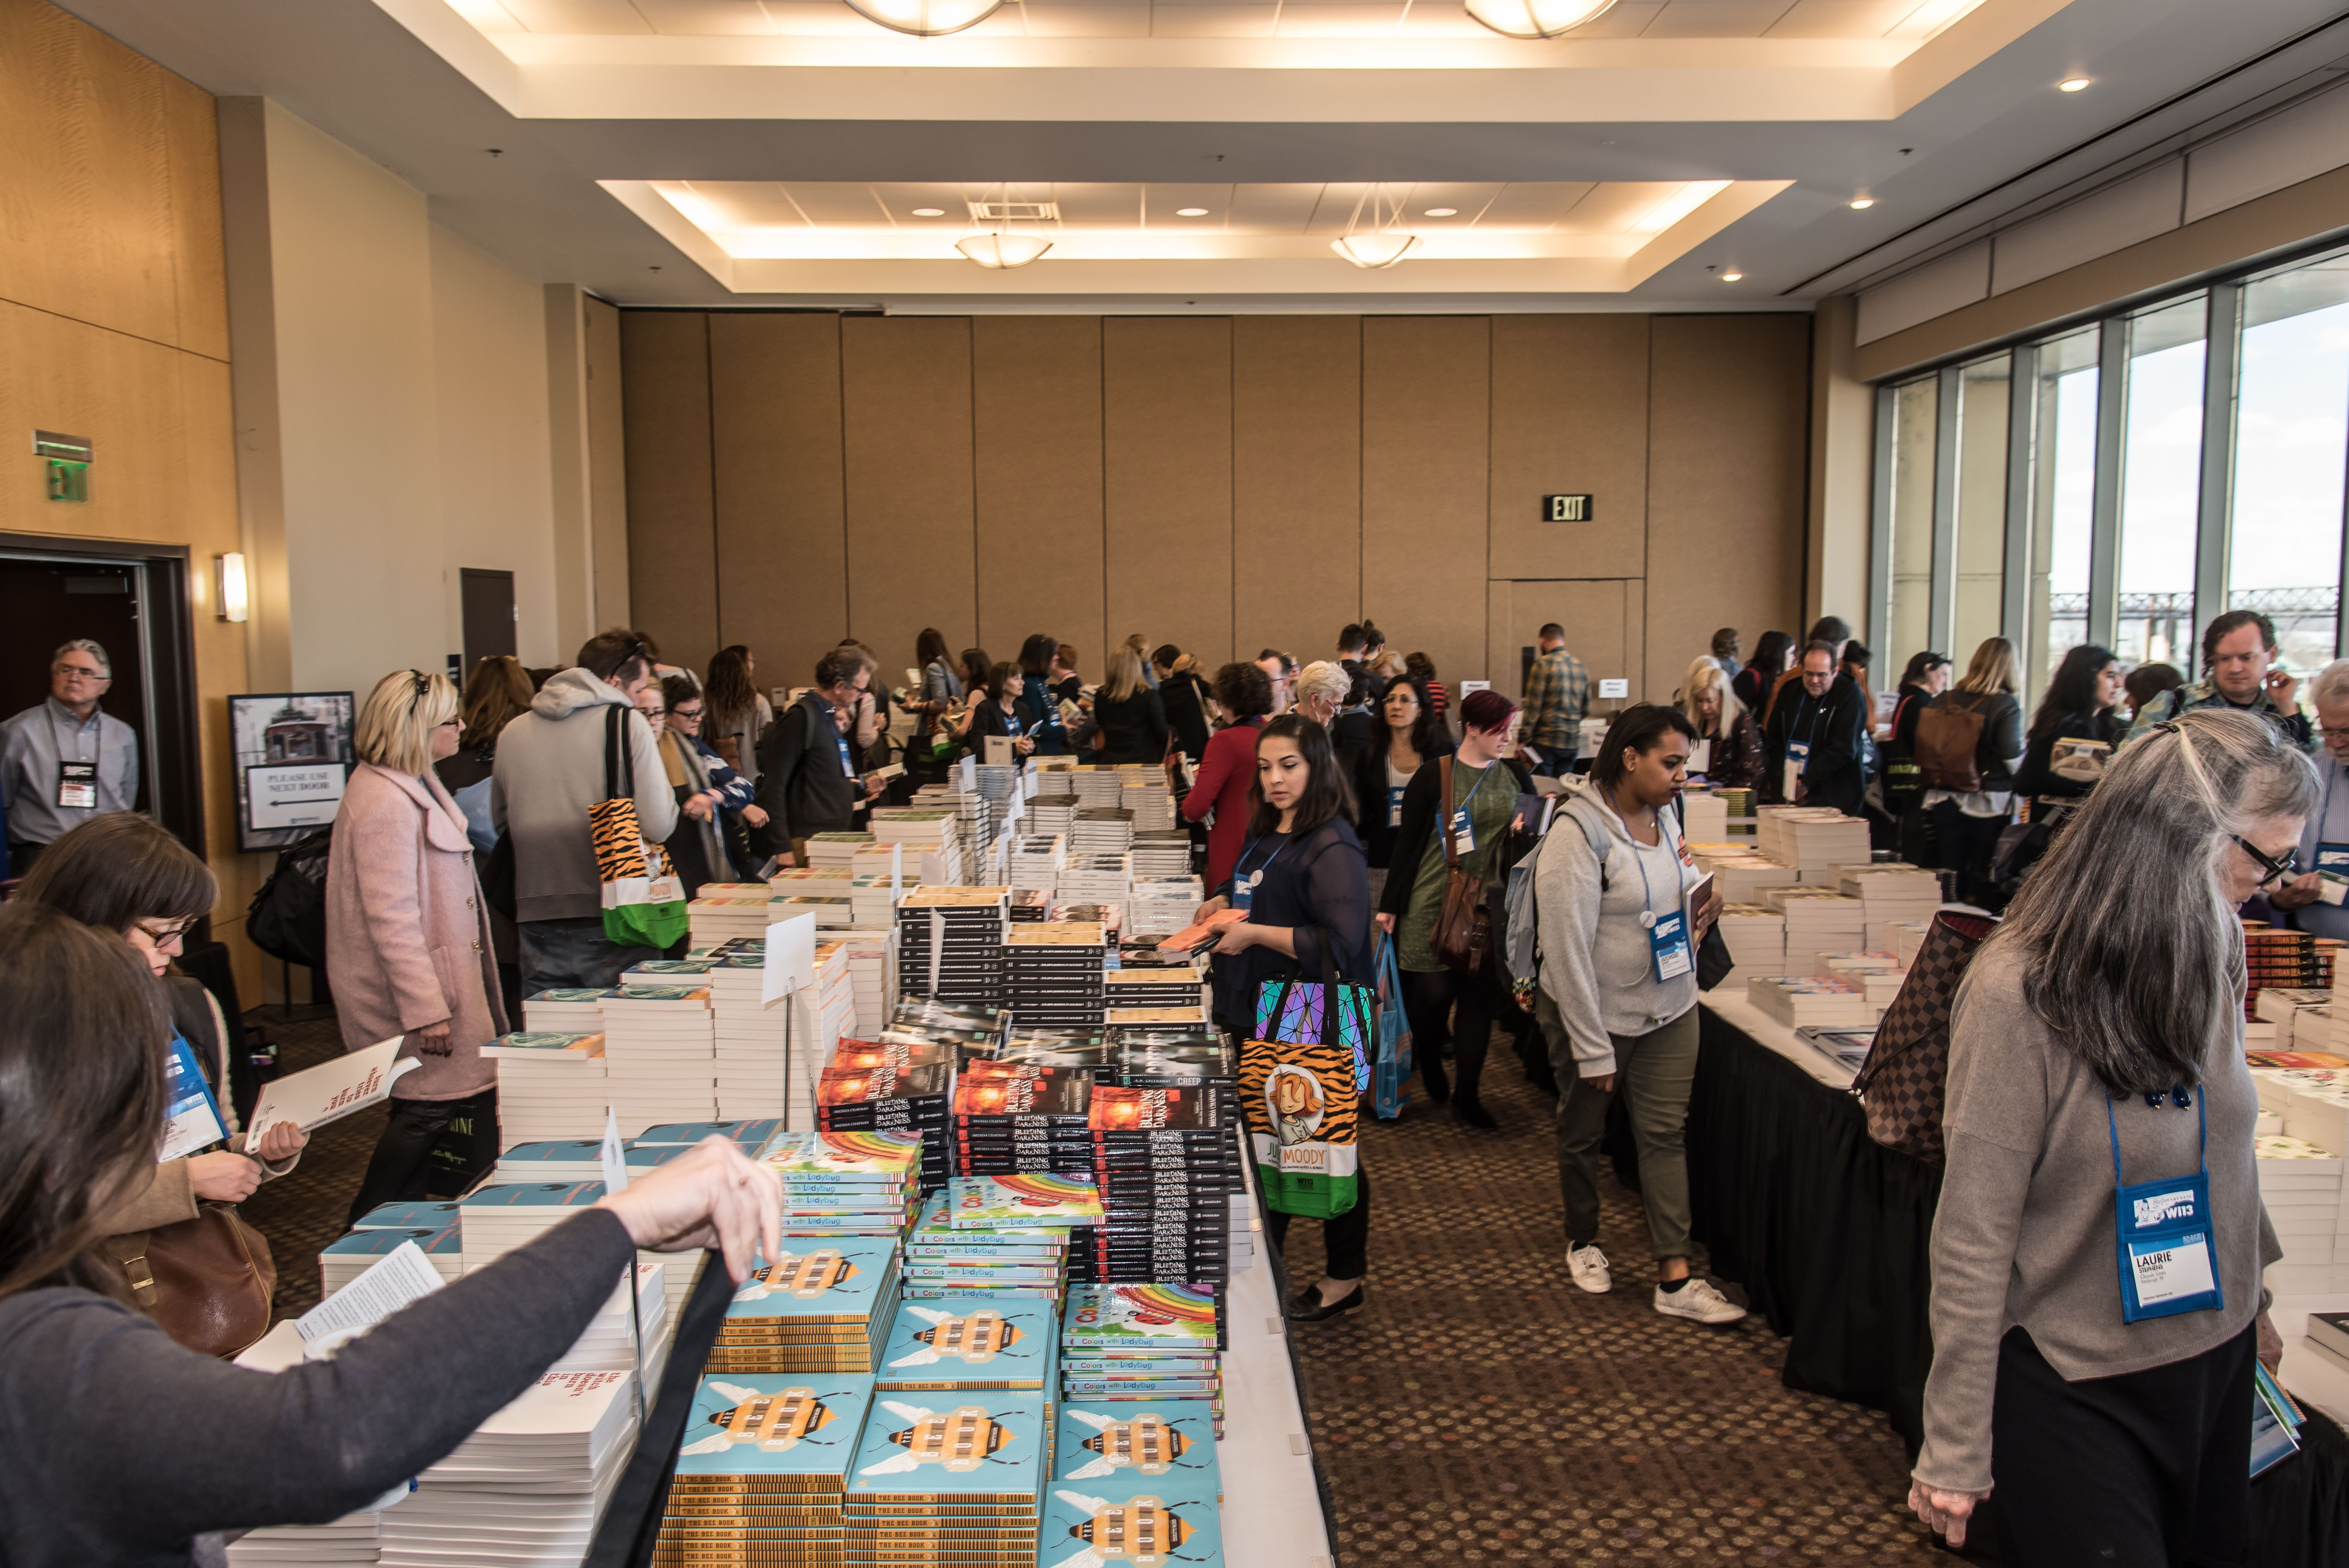 The galley room was a highlight for booksellers at Wi13.